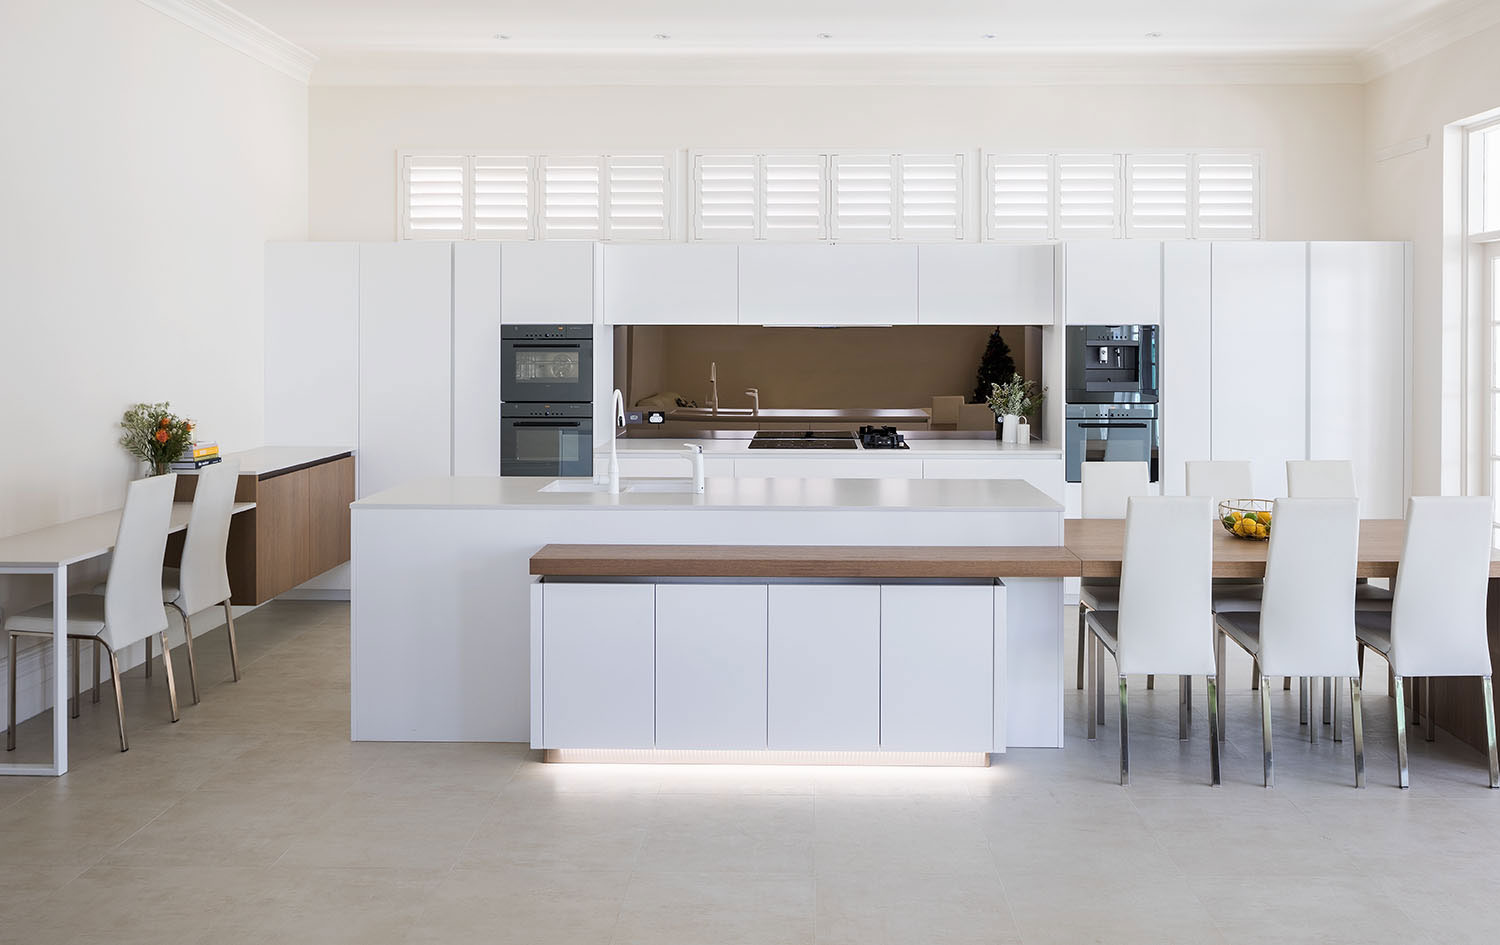 Where modern and traditional meet: an elegant kitchen design